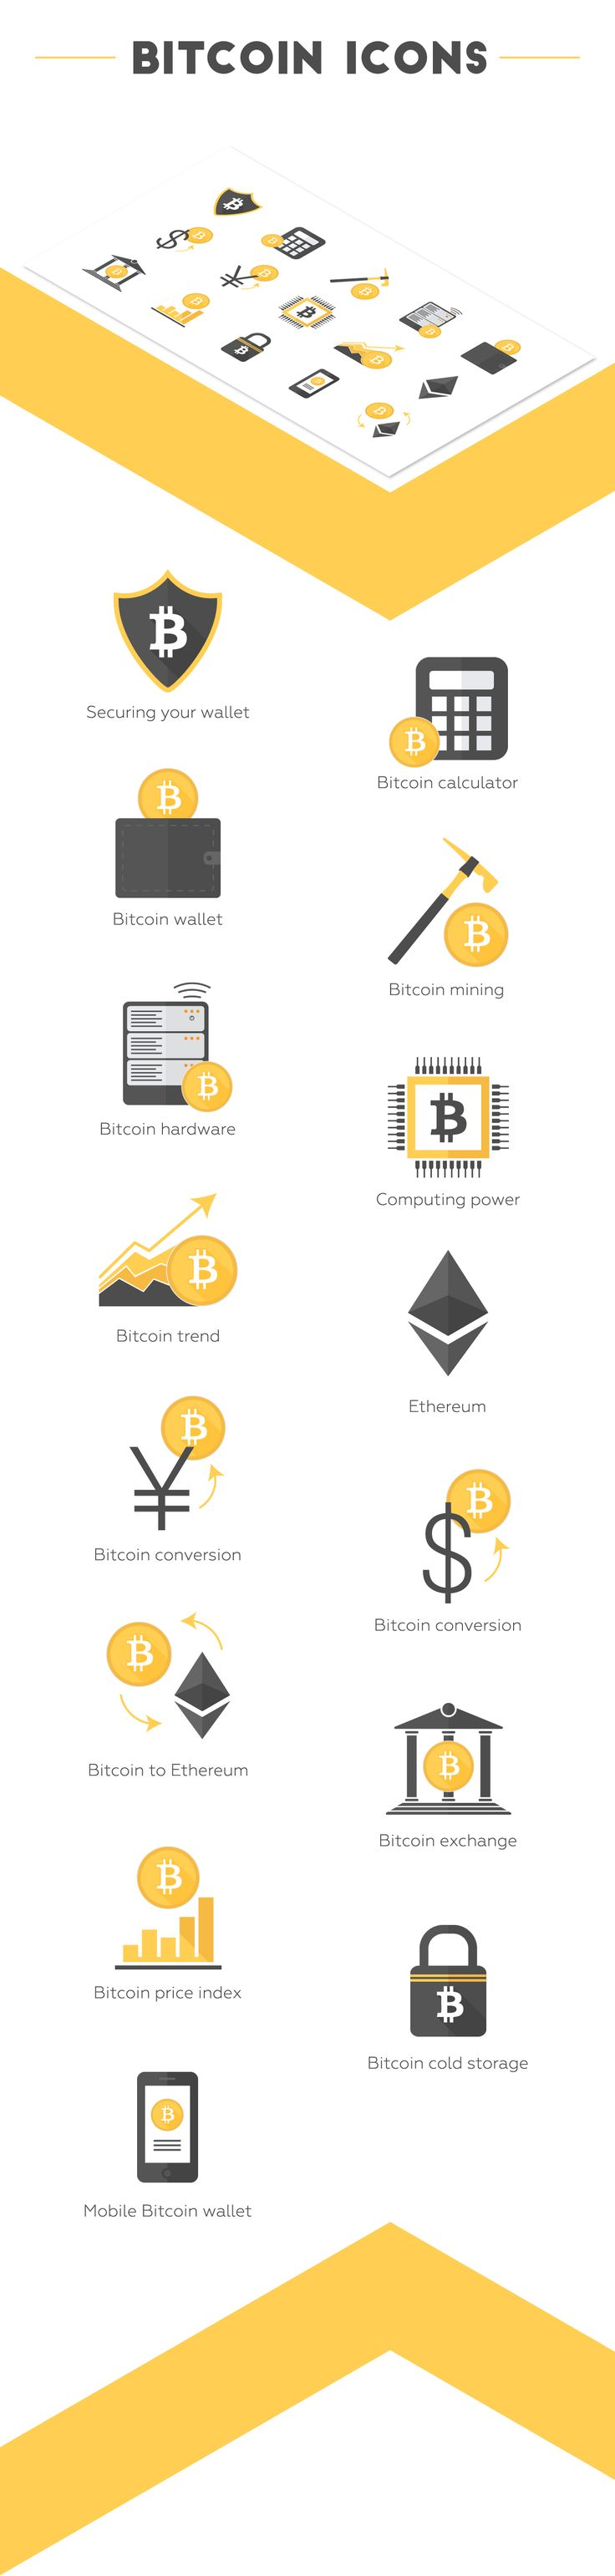 Cryptocurrency Icon set with 15 vector-based icons ready for use in any presentation. This set includes the following flat icons; encrypted Bitcoin, calculator, Bitcoin mining, hardware, wallet, Bitcoin trend, Ethereum, cryptocurrency exchange, mobile payment, Bitcoin conversion and more.